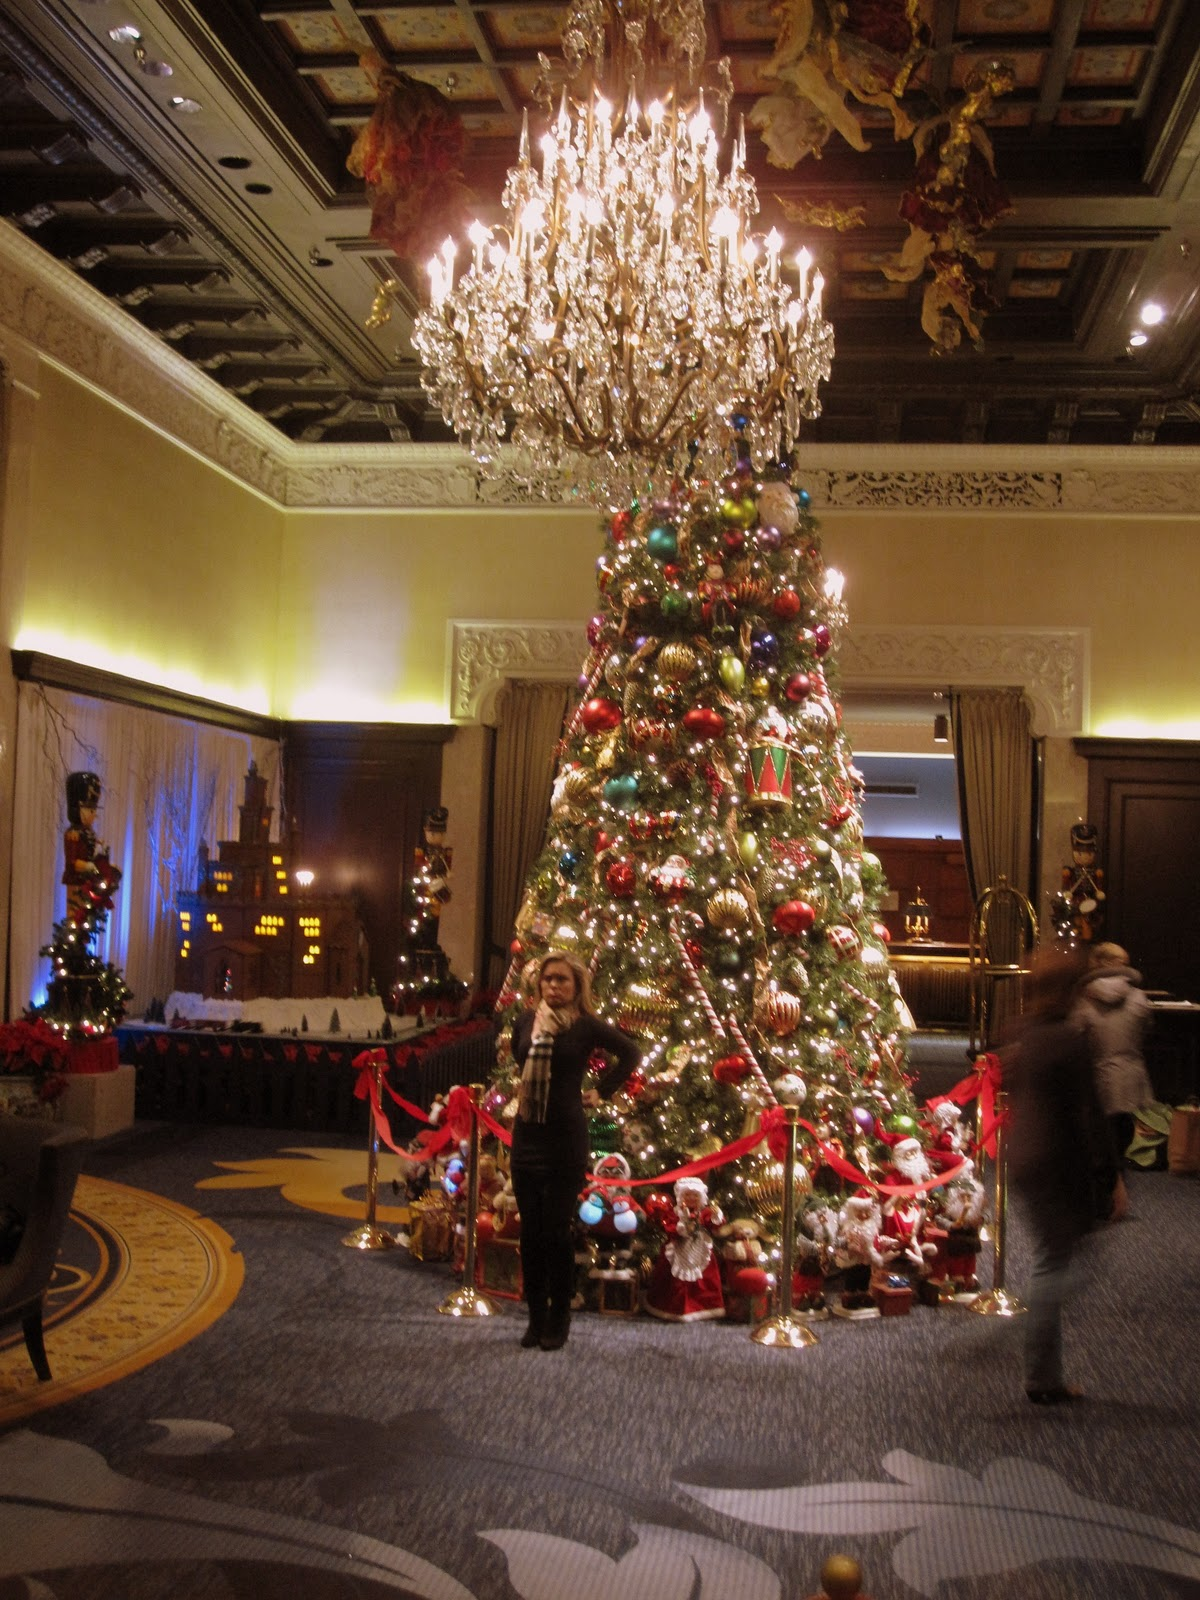 f1db83a165 Recently I was at the Drake Hotel on Michigan avenue near the top of the  Magnificent Mile when I took some holiday photos. I really like the Drake  dragon he ...